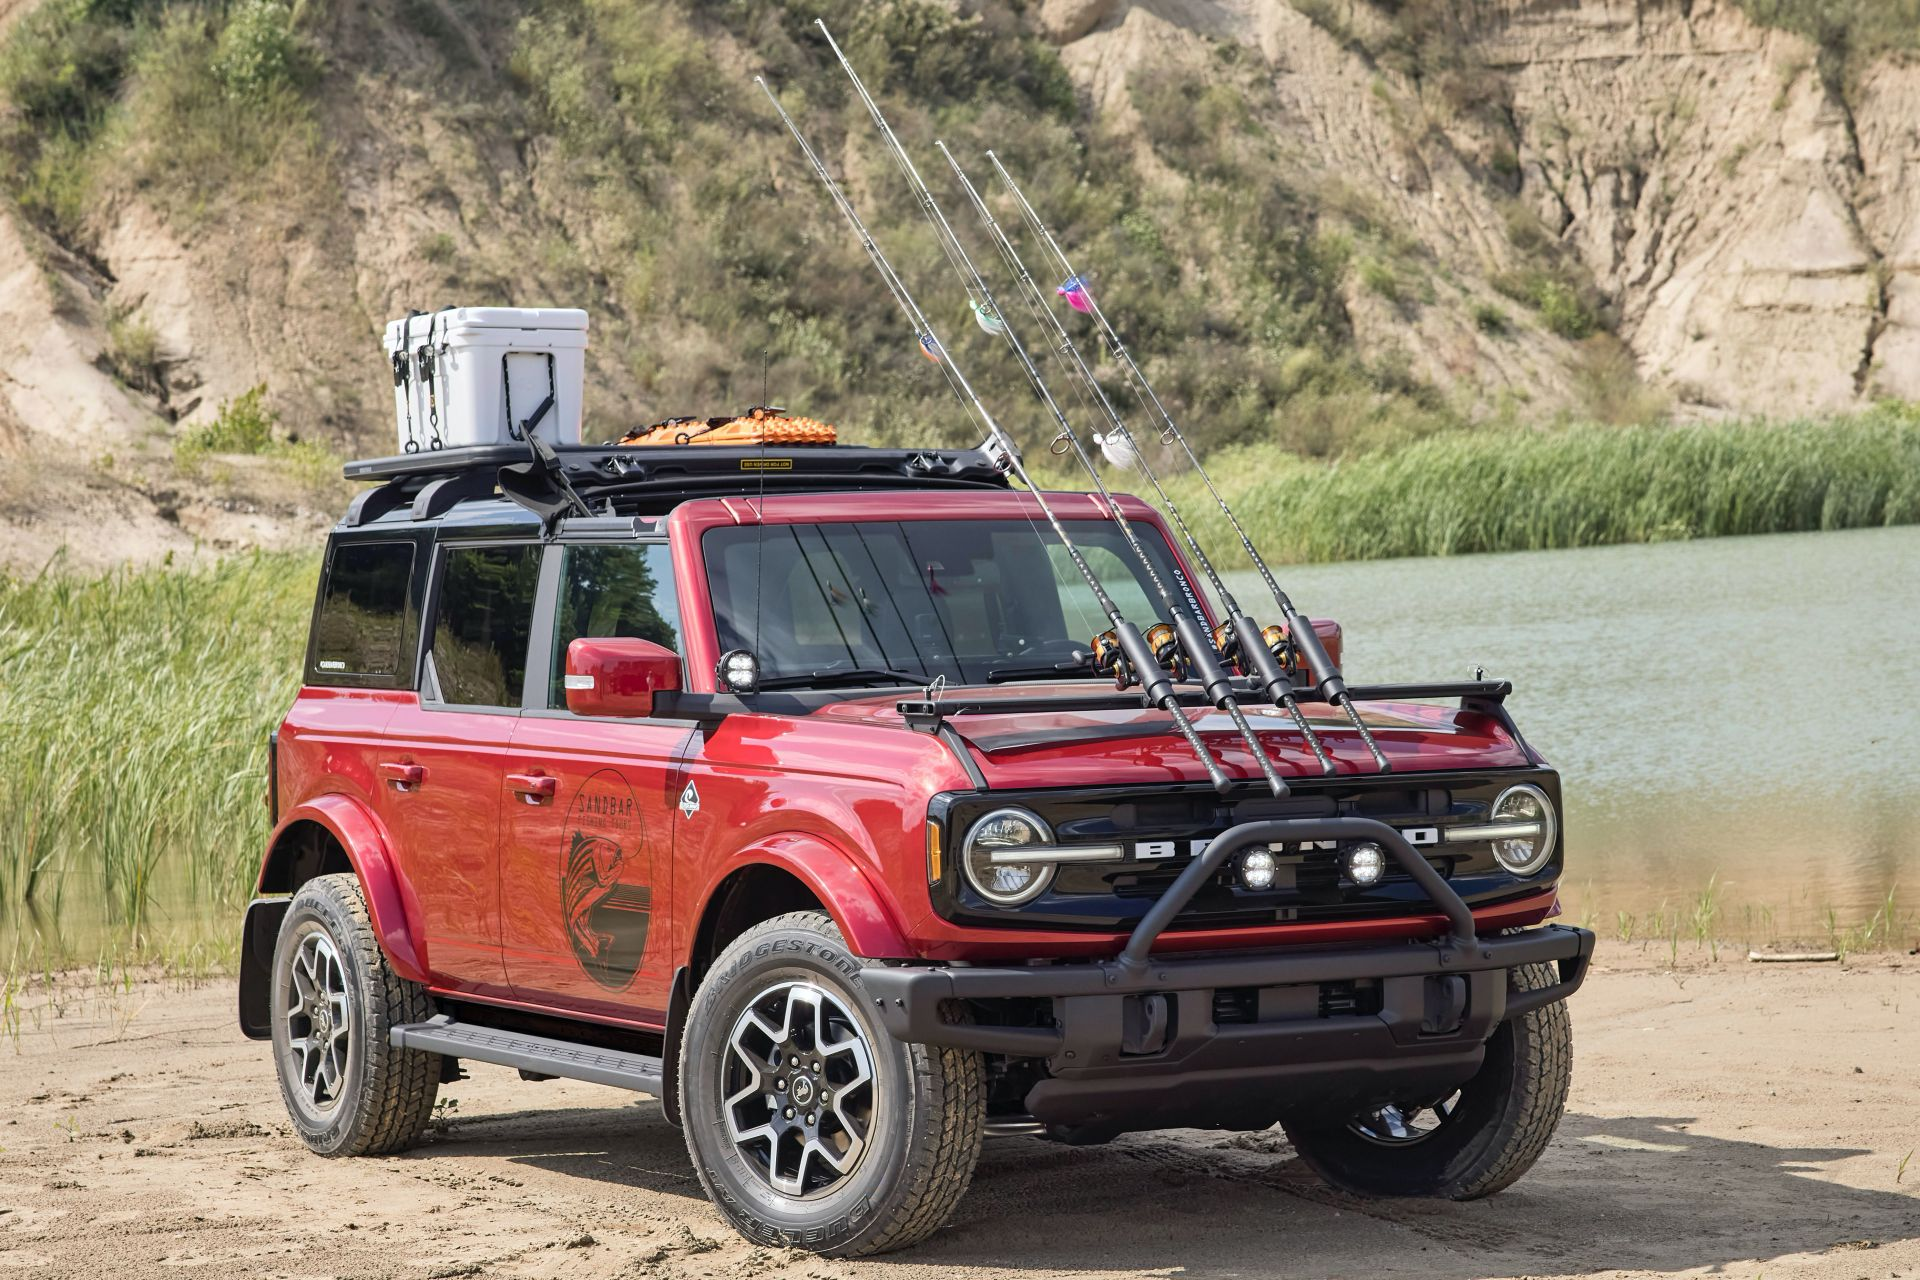 Ford-Bronco-4-Door-Outer-Banks-Fishing-Guide-Concept-1